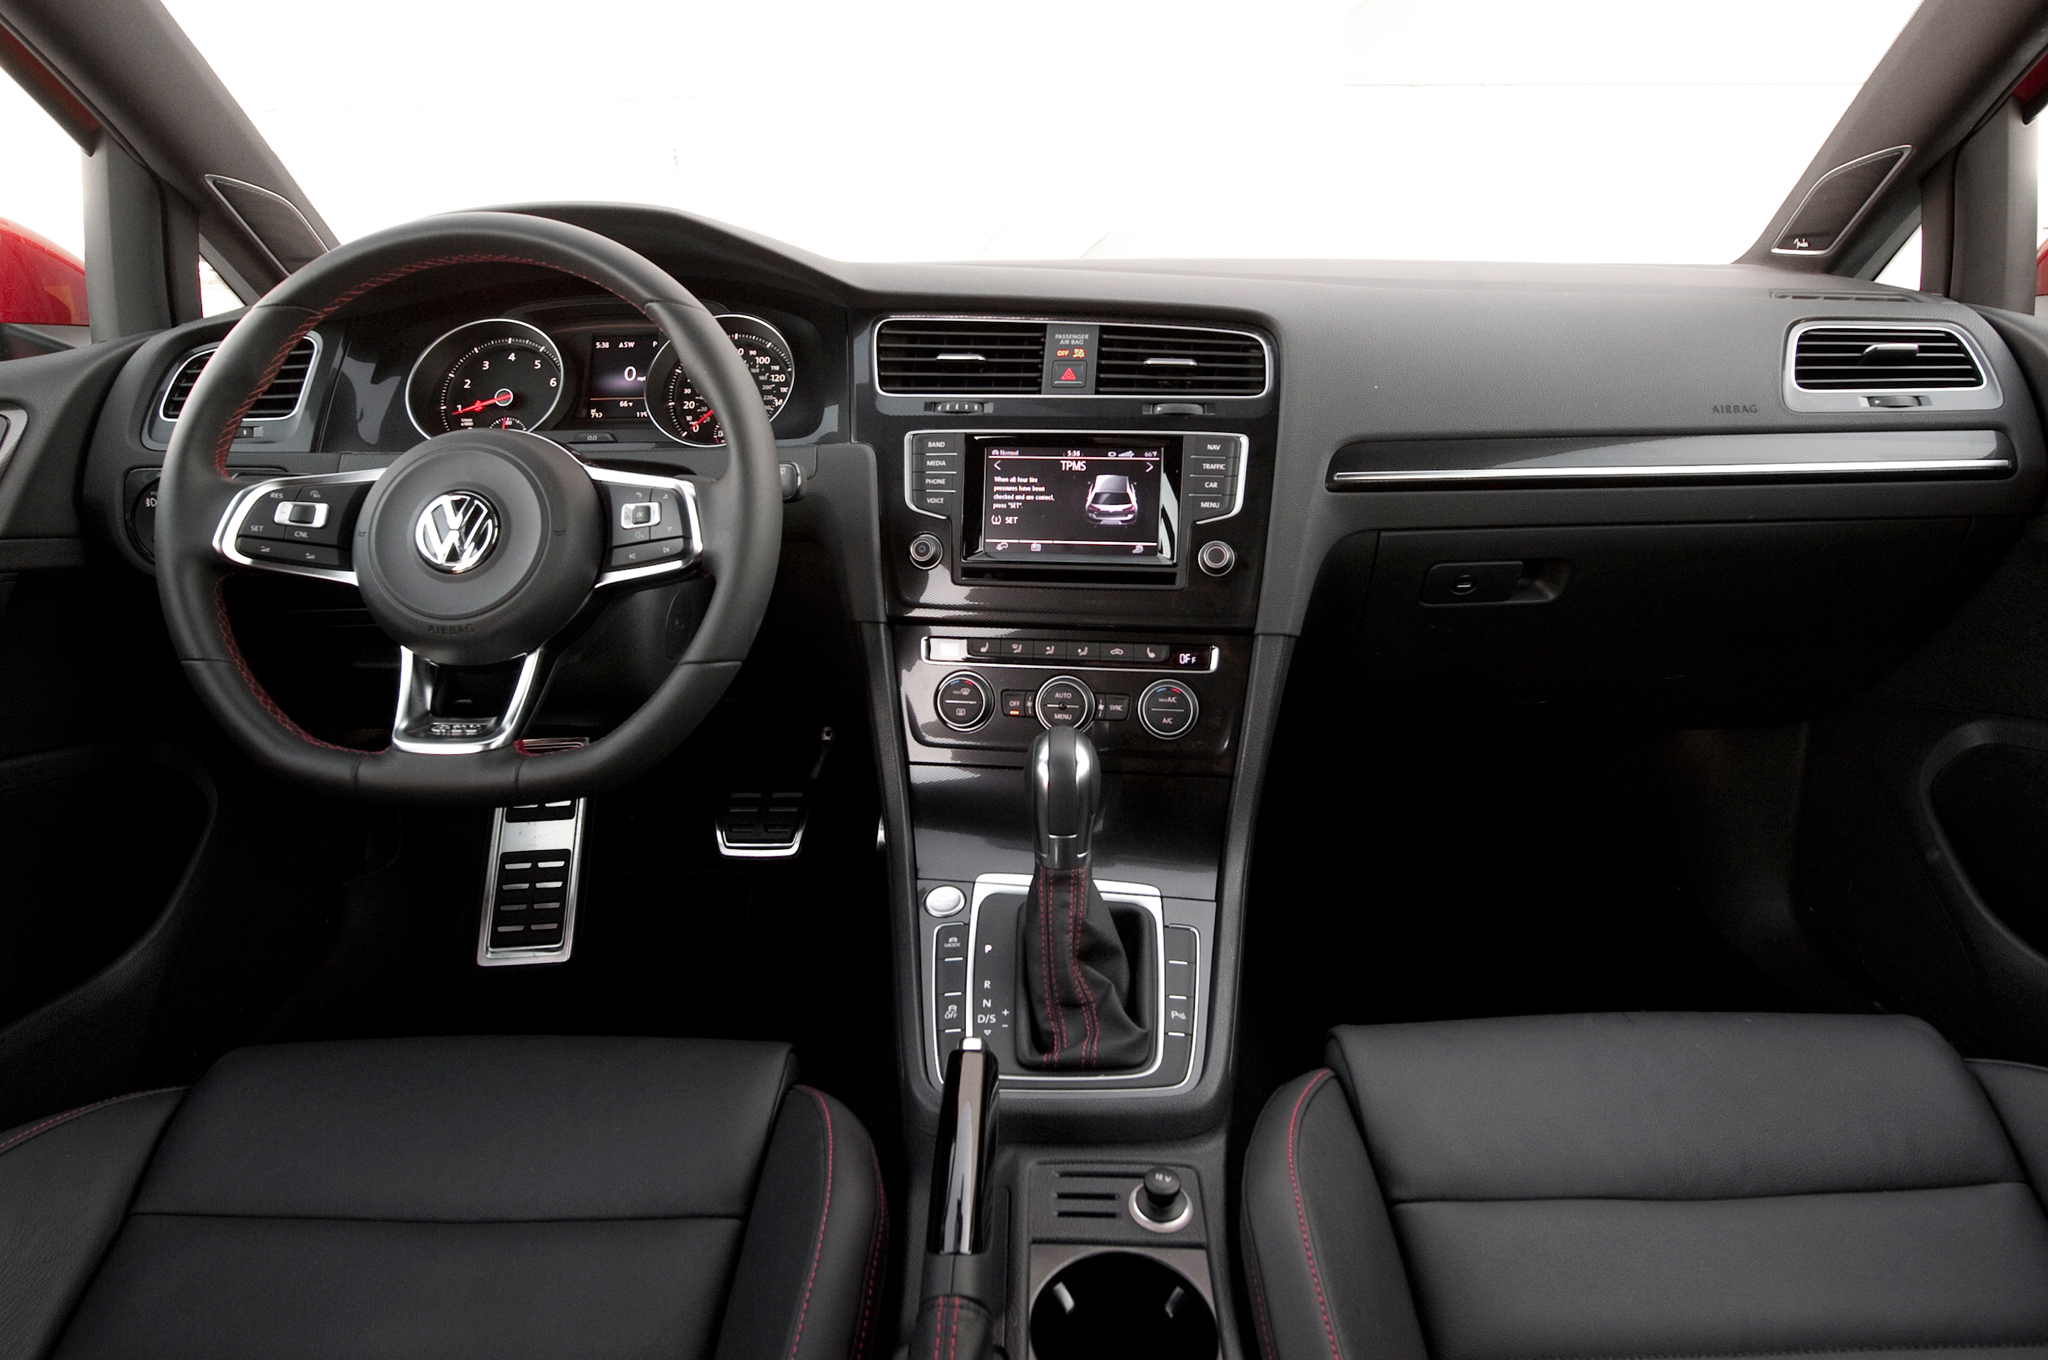 2015 volkswagen golf gti interior dash and panel 975 cars performance reviews and test drive. Black Bedroom Furniture Sets. Home Design Ideas